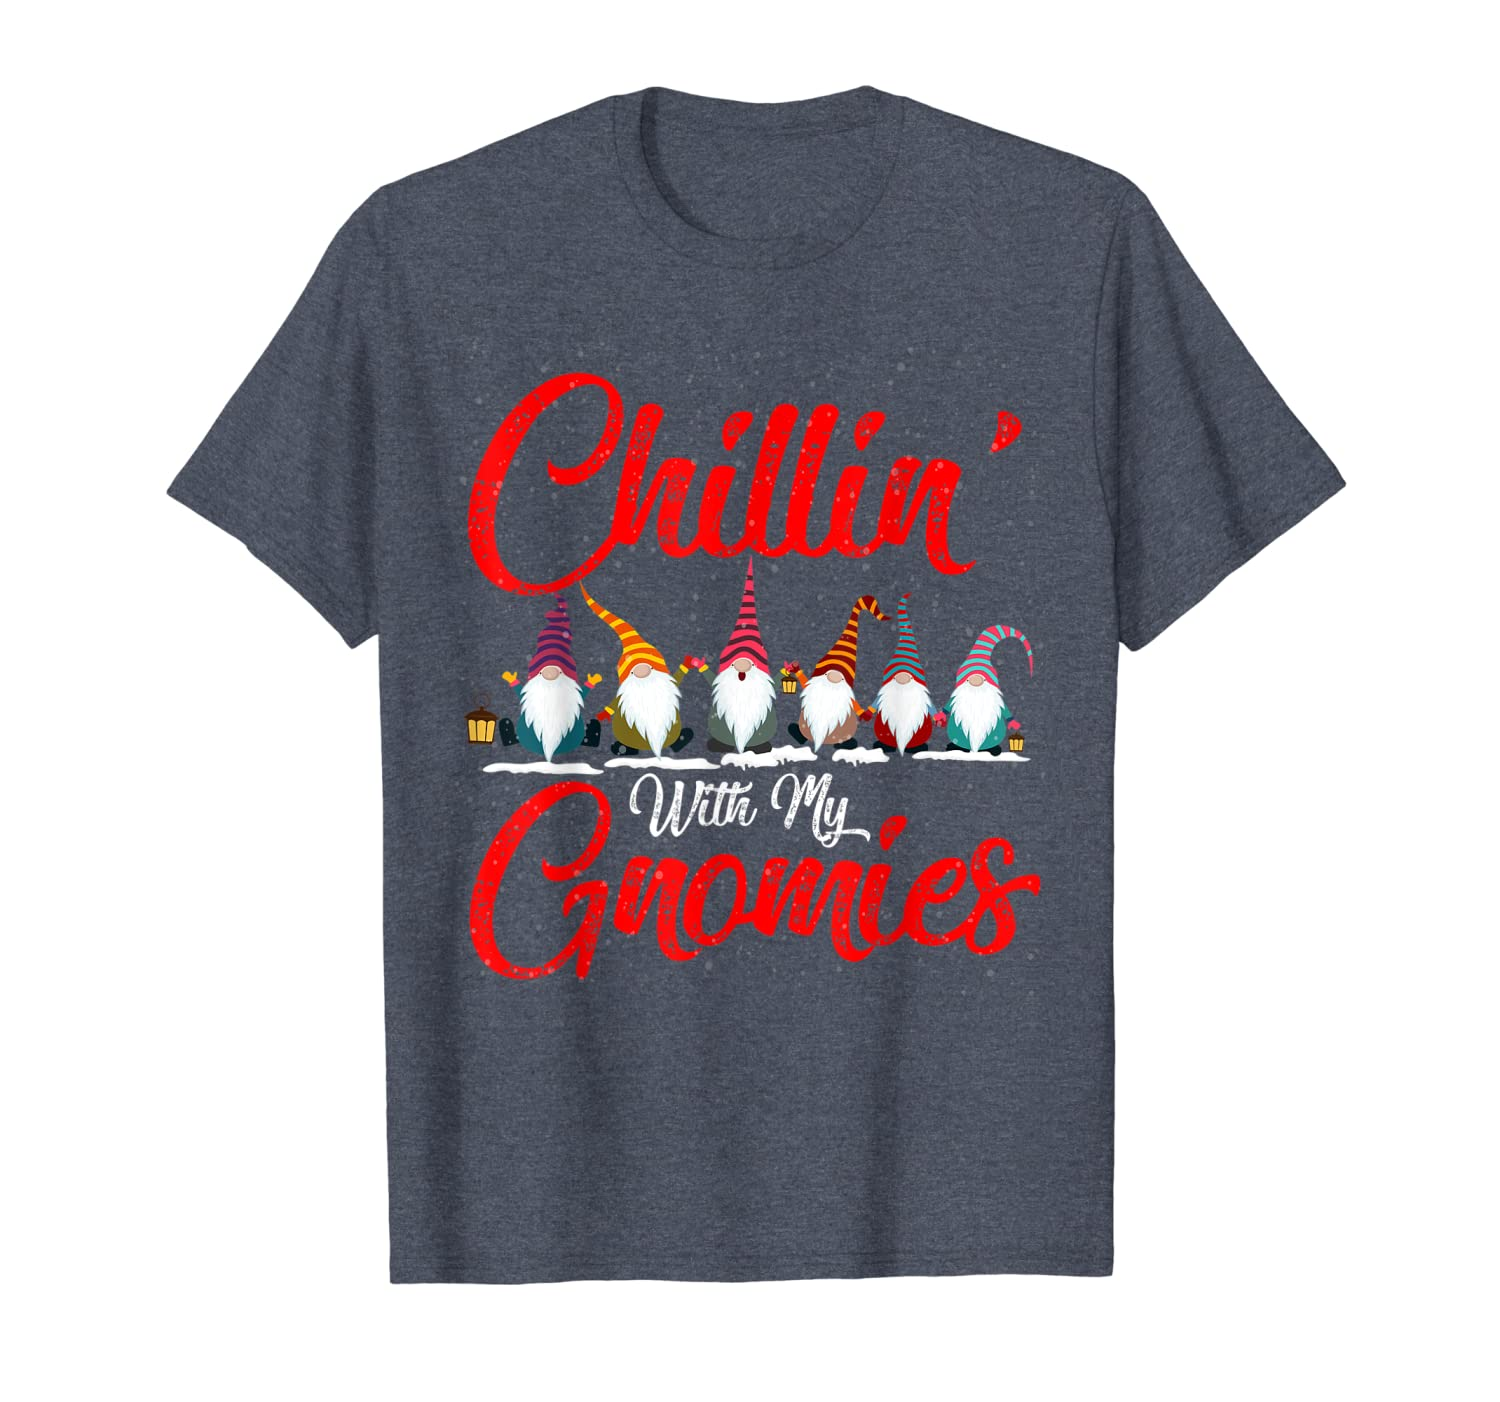 Chillin' With My Gnomies Cute Gnomes Tomte Elves Christmas T-Shirt-TH